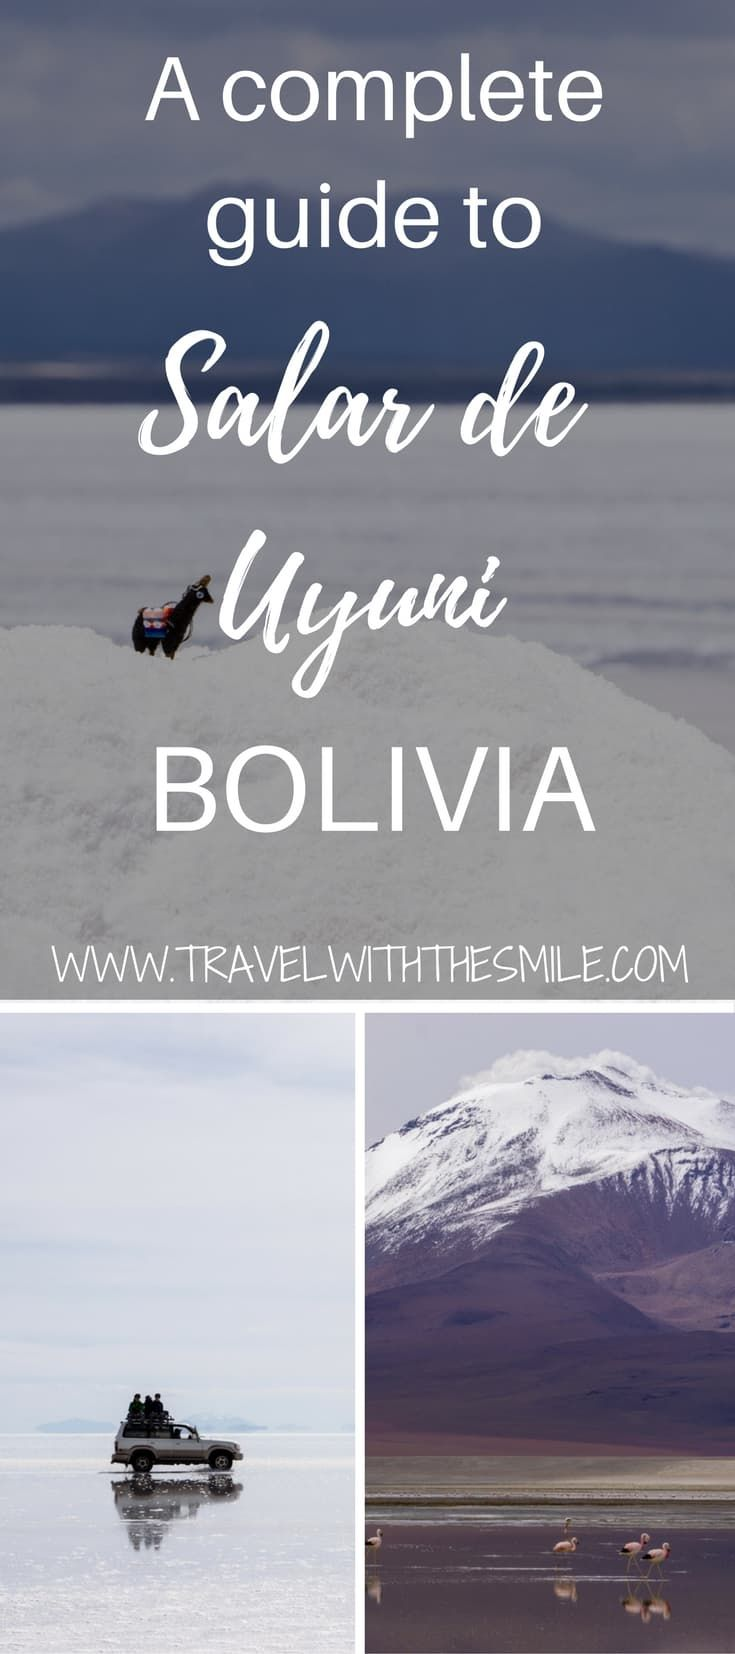 Salt Flats in Bolivia - a complete guide to Salar de Uyuni tour   What to do in Bolivia   Things to do in Bolivia   Salar de Uyuni   Salt flat Bolivia   Biggest salt flat in the world   Laguna Colorada   #bolivia #southamerica #saltflats